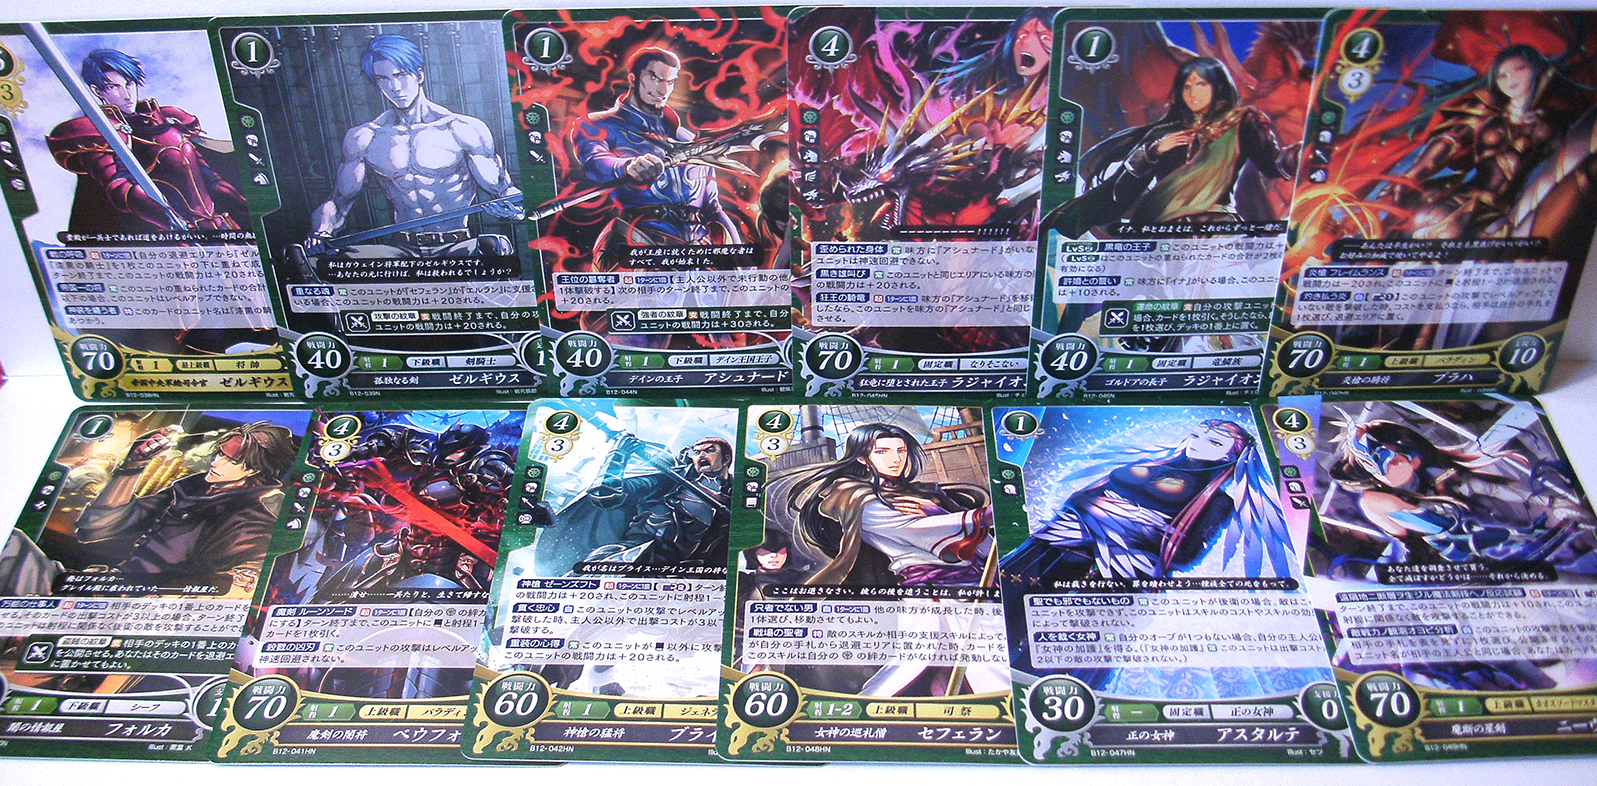 Radiant Dawn Fire Emblem Cipher TCG cards (series 12) from shinyv